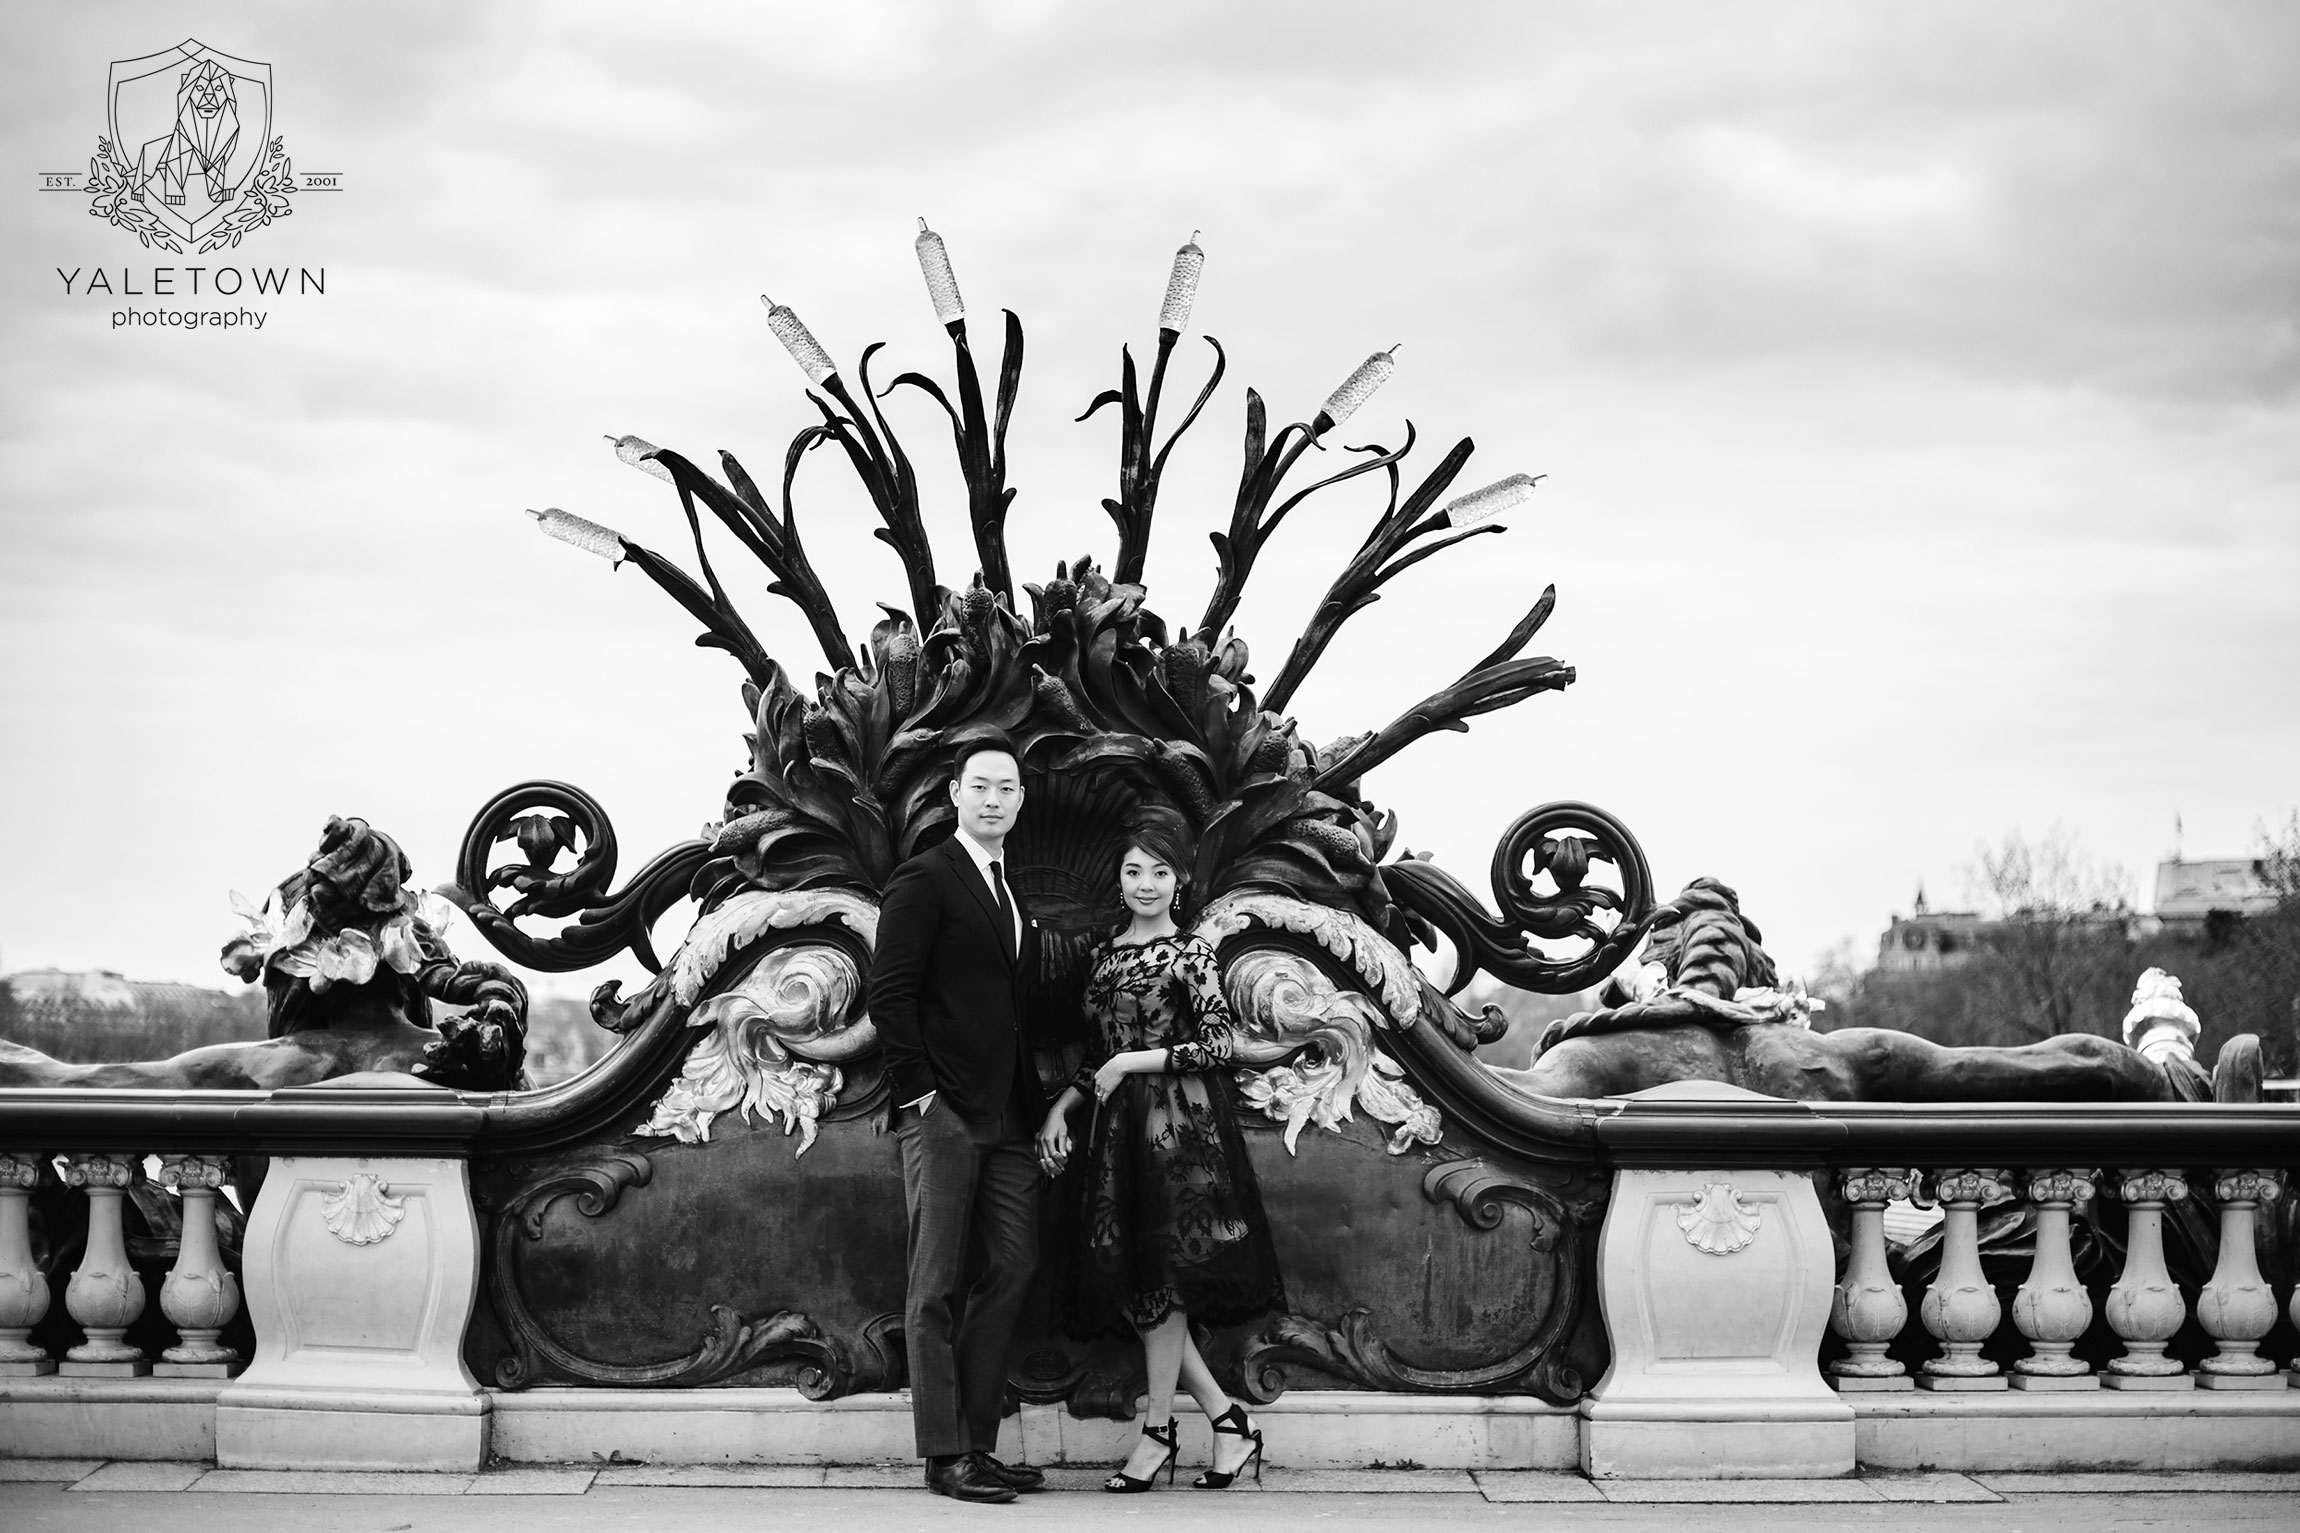 paris-engagement-session-pont-alexandre-III-yaletown-photography-vancouver-wedding-photographer-paris-wedding-photographer-photo